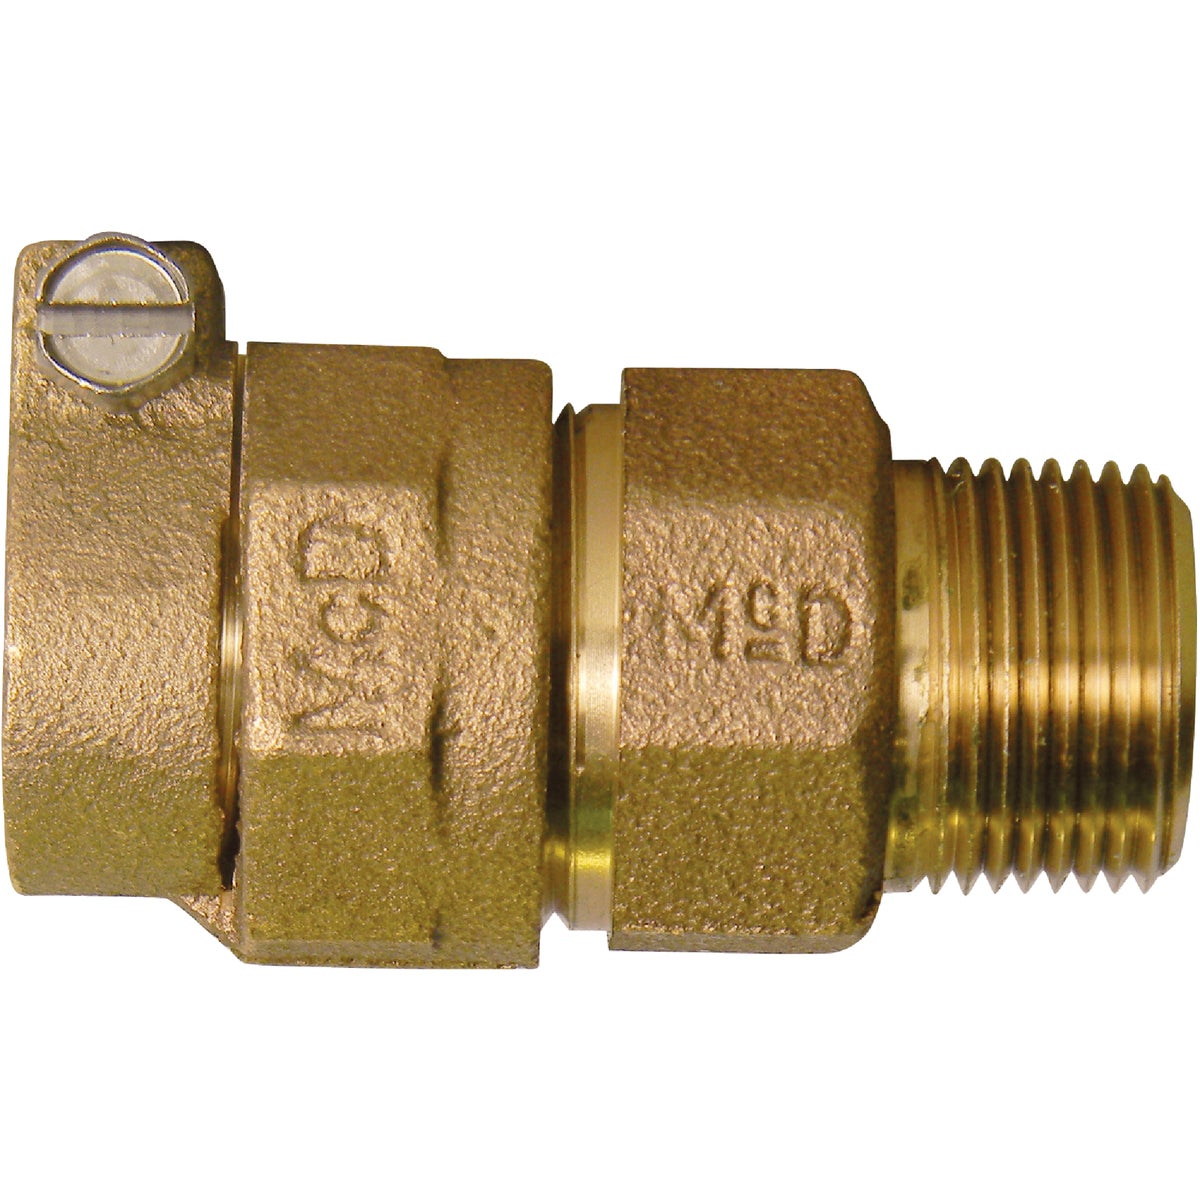 1X3/4 CTSXMIP ADAPTER - 74753-22 by A Y Mcdonald Mfg Co